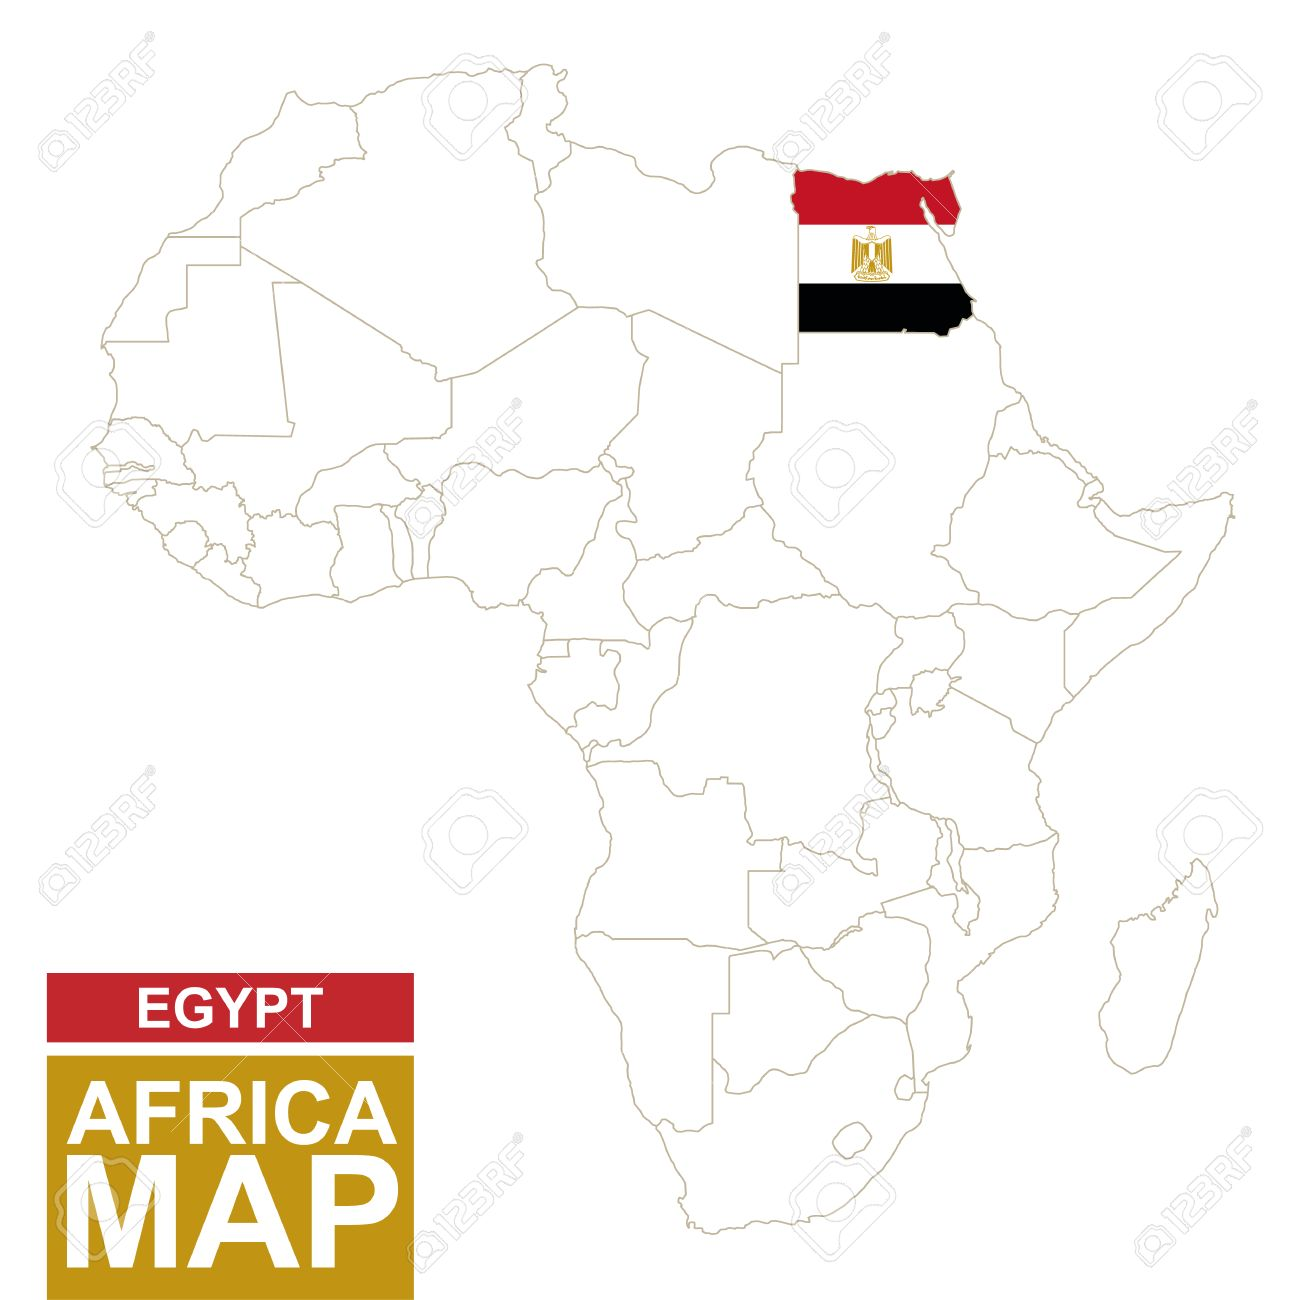 Africa contoured map with highlighted Egypt. Egypt map and flag.. on